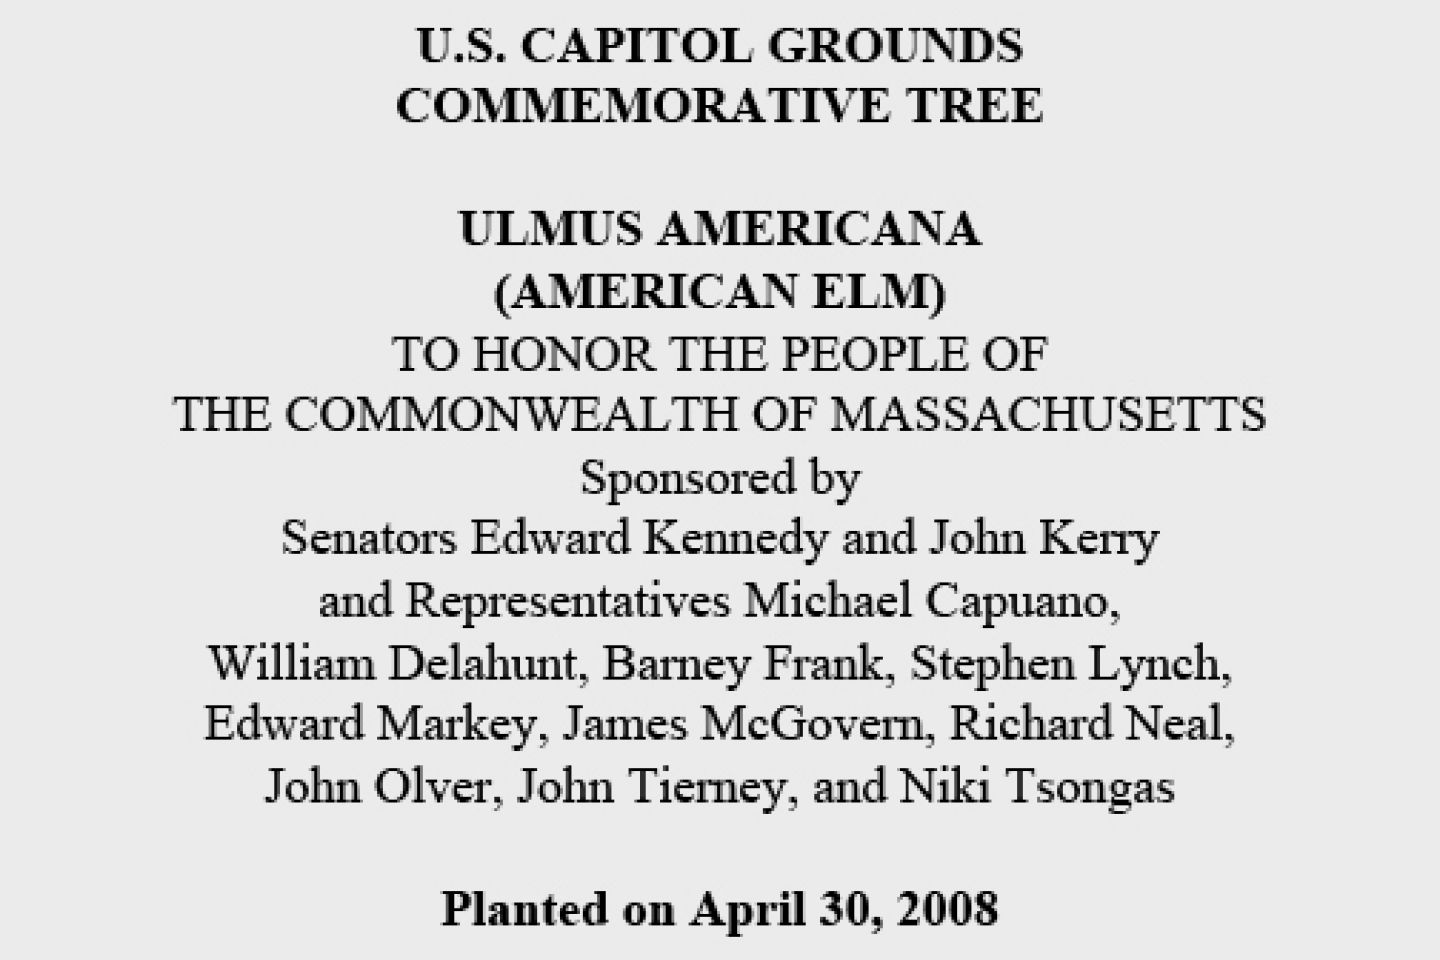 U.S. Capitol Grounds Commemorative Tree  Ulmus americana (American Elm)  To Honor the People of the Commonwealth of Massachusetts  Sponsored by...